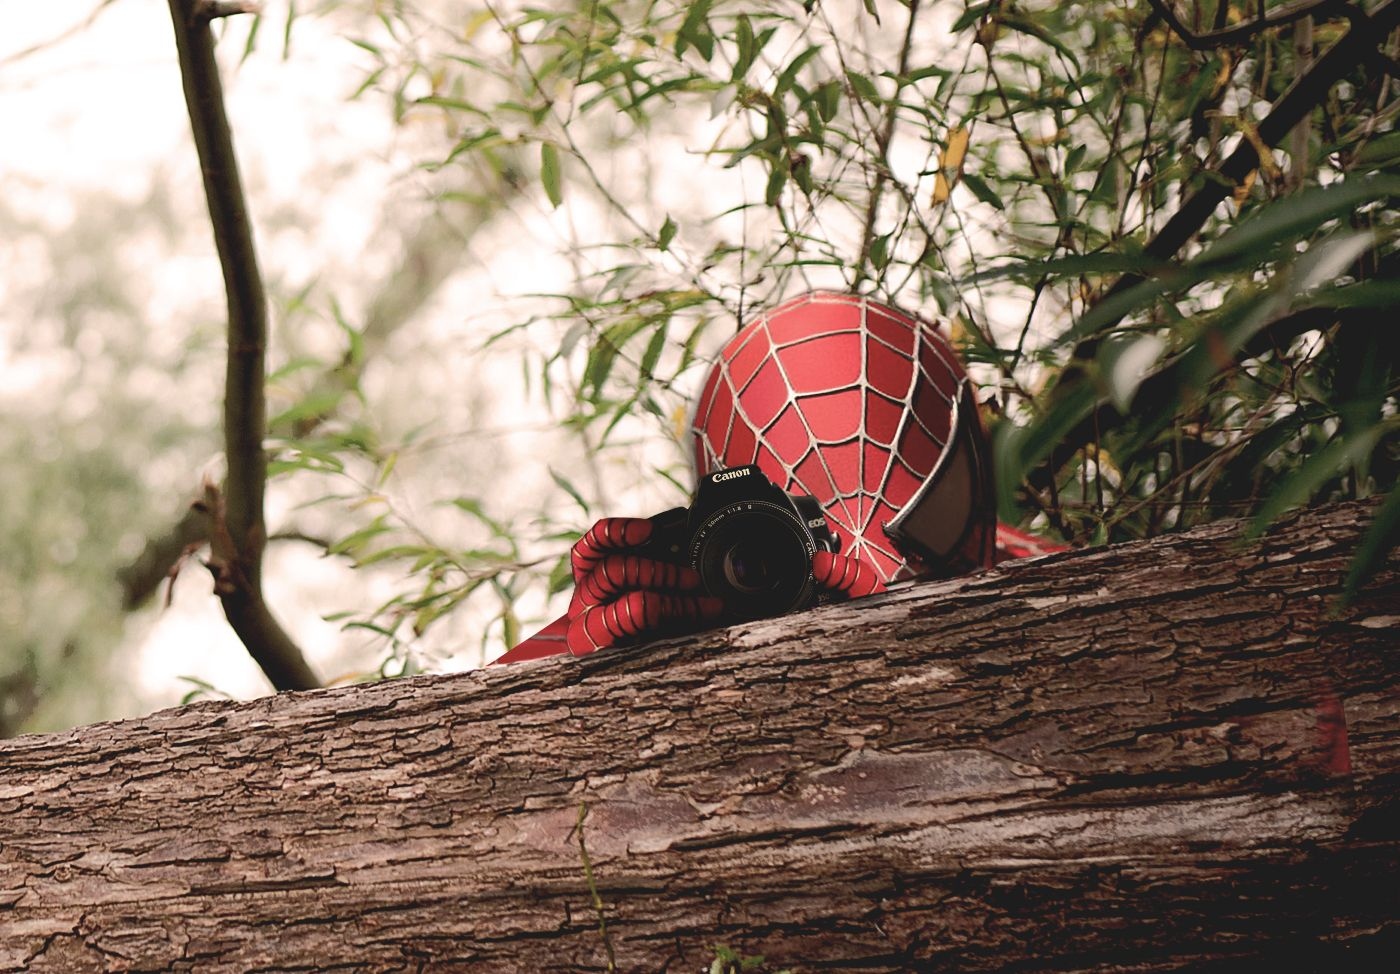 Spiderman Freelance Photographer